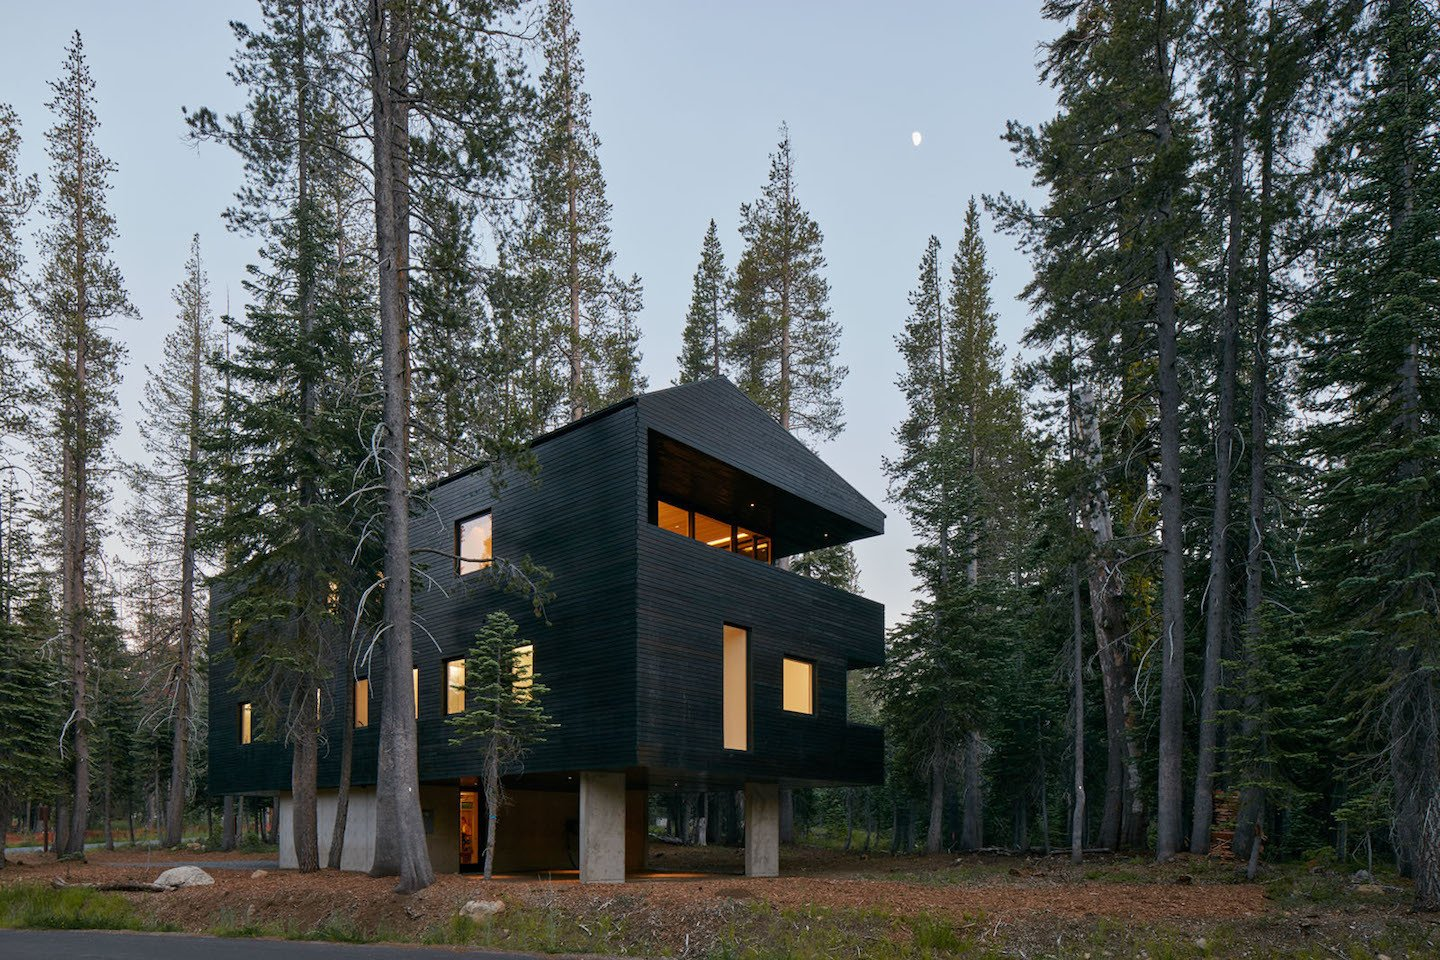 The exterior timber cladding is coated with black tar, a traditional Norwegian treatment. The finish serves a variety of purposes: solar heat gain, water resistance, and insect repellant.  Modern Winter Retreats by Aileen Kwun from Here's What Norse Mythology and Modern Architecture Have in Common